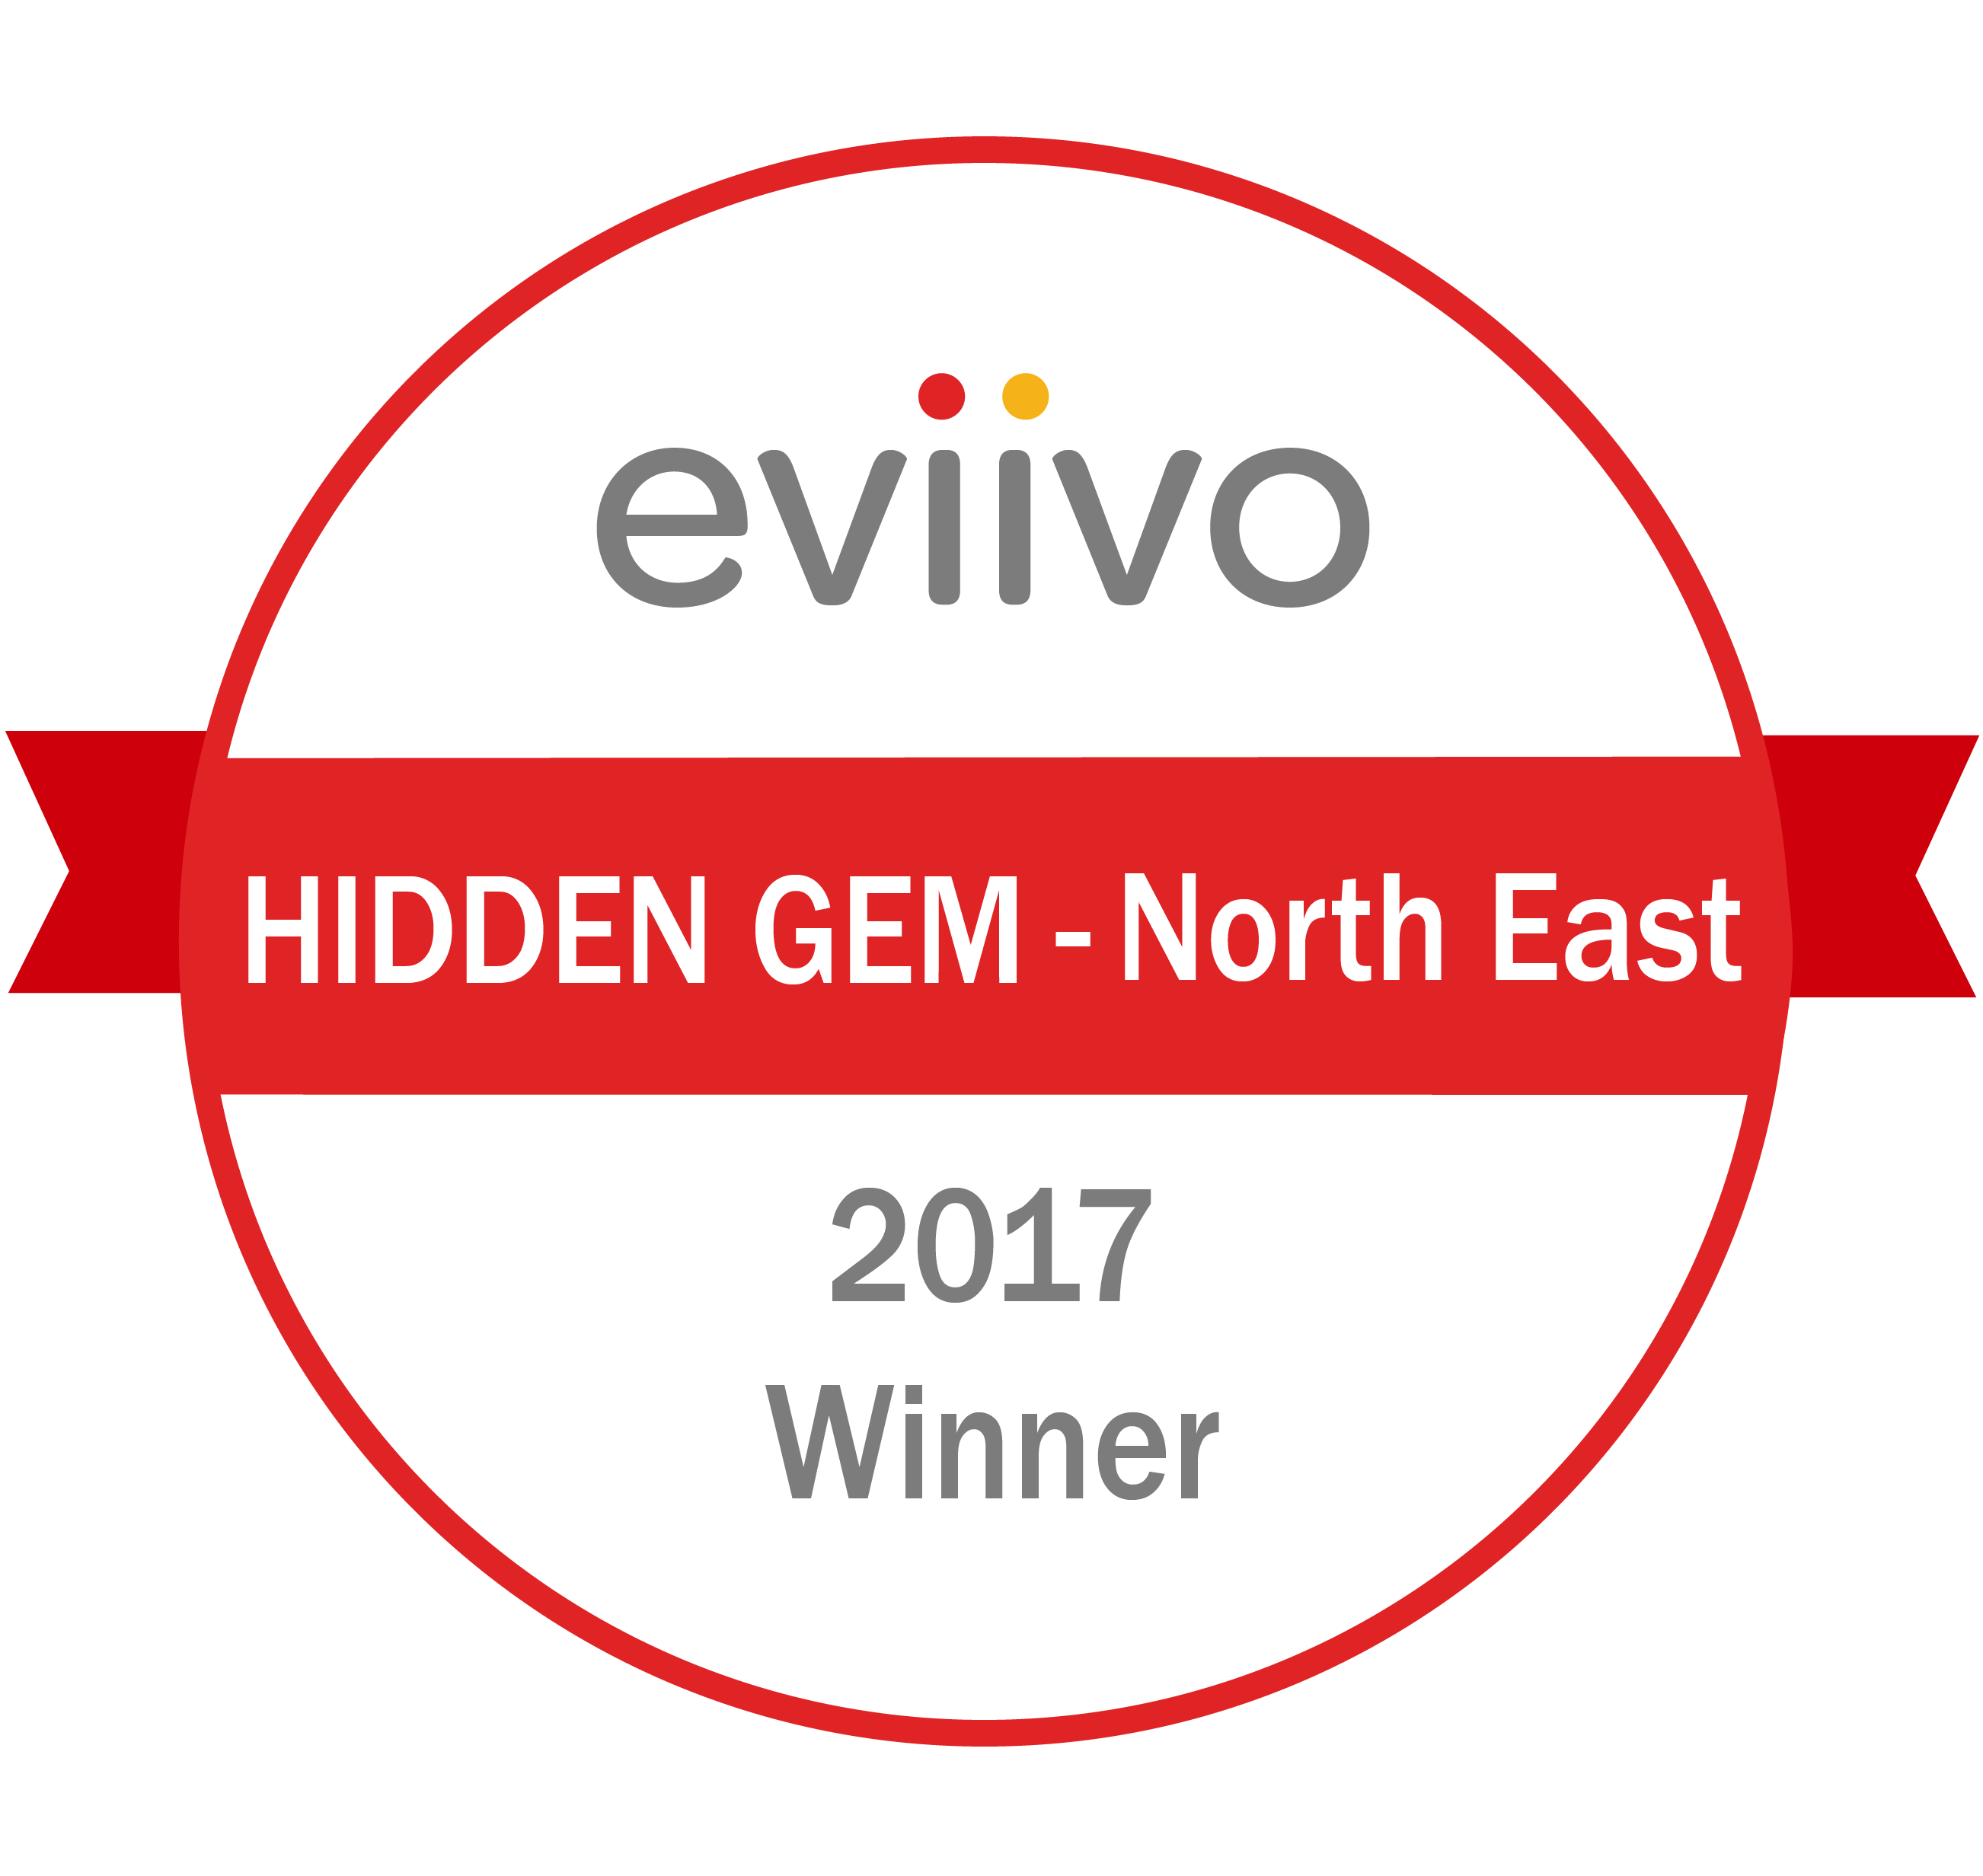 eviivo awards 2017 winner